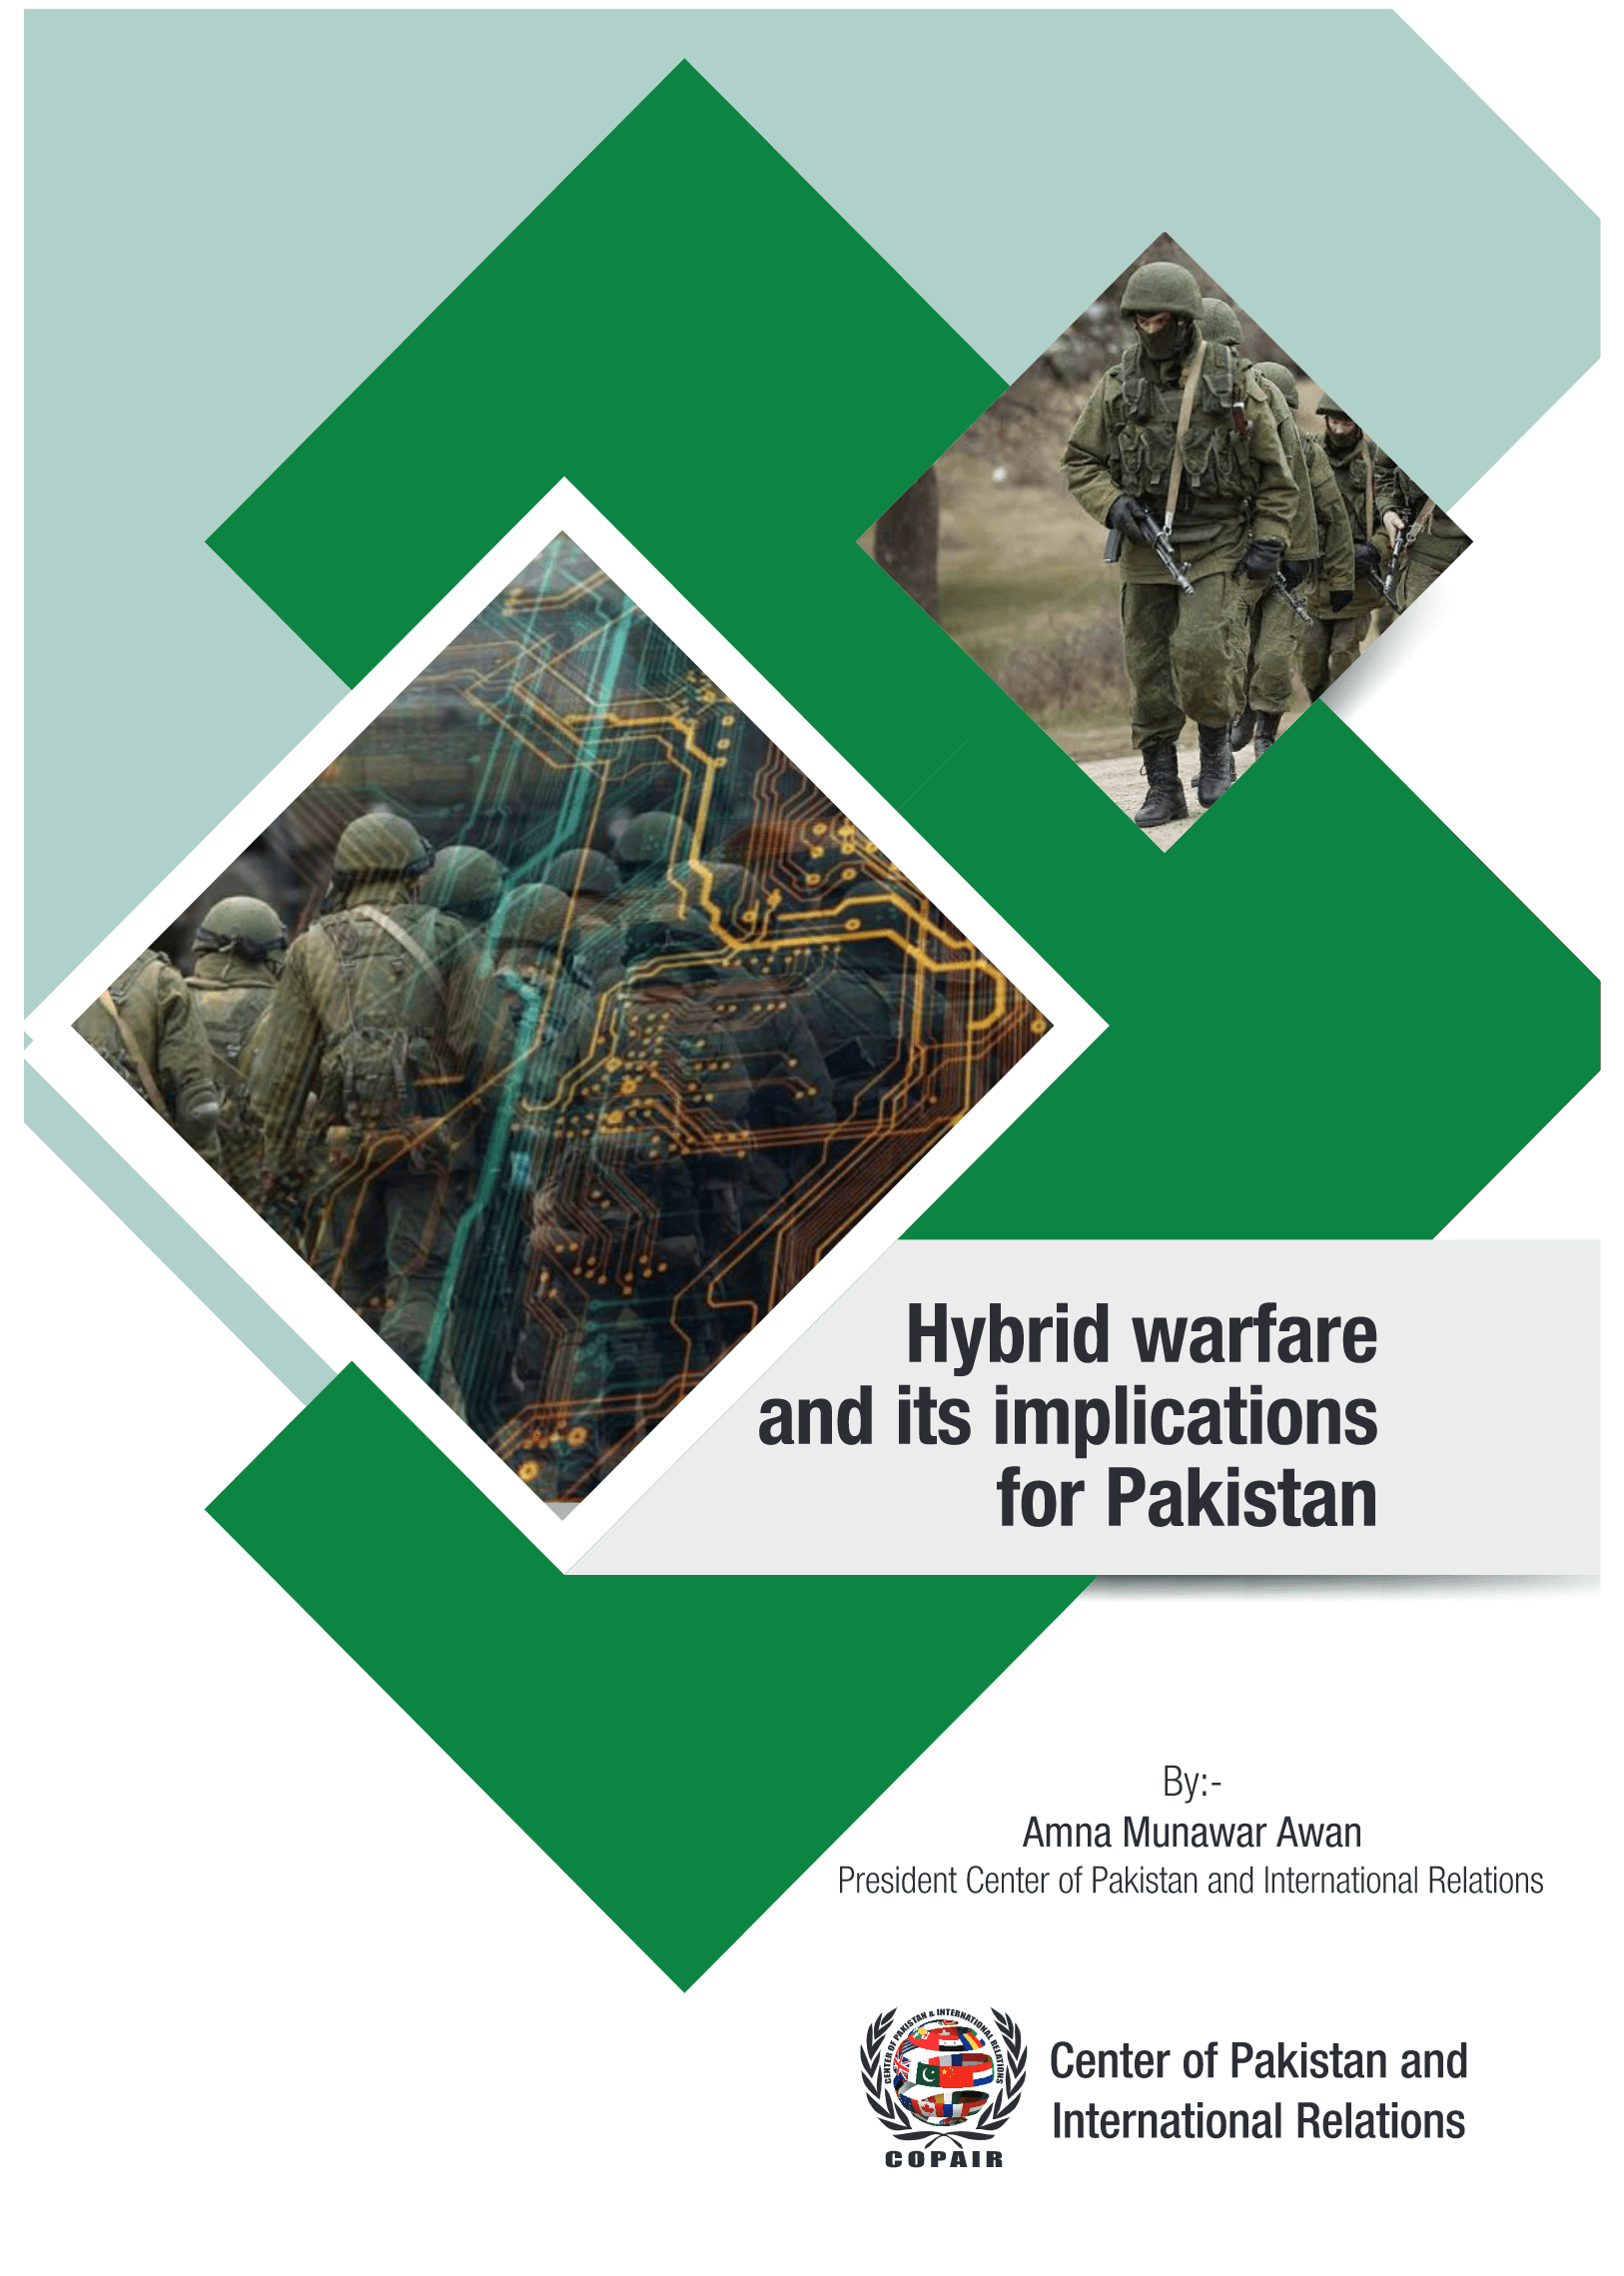 Hybrid warfare and its implications for Pakistan